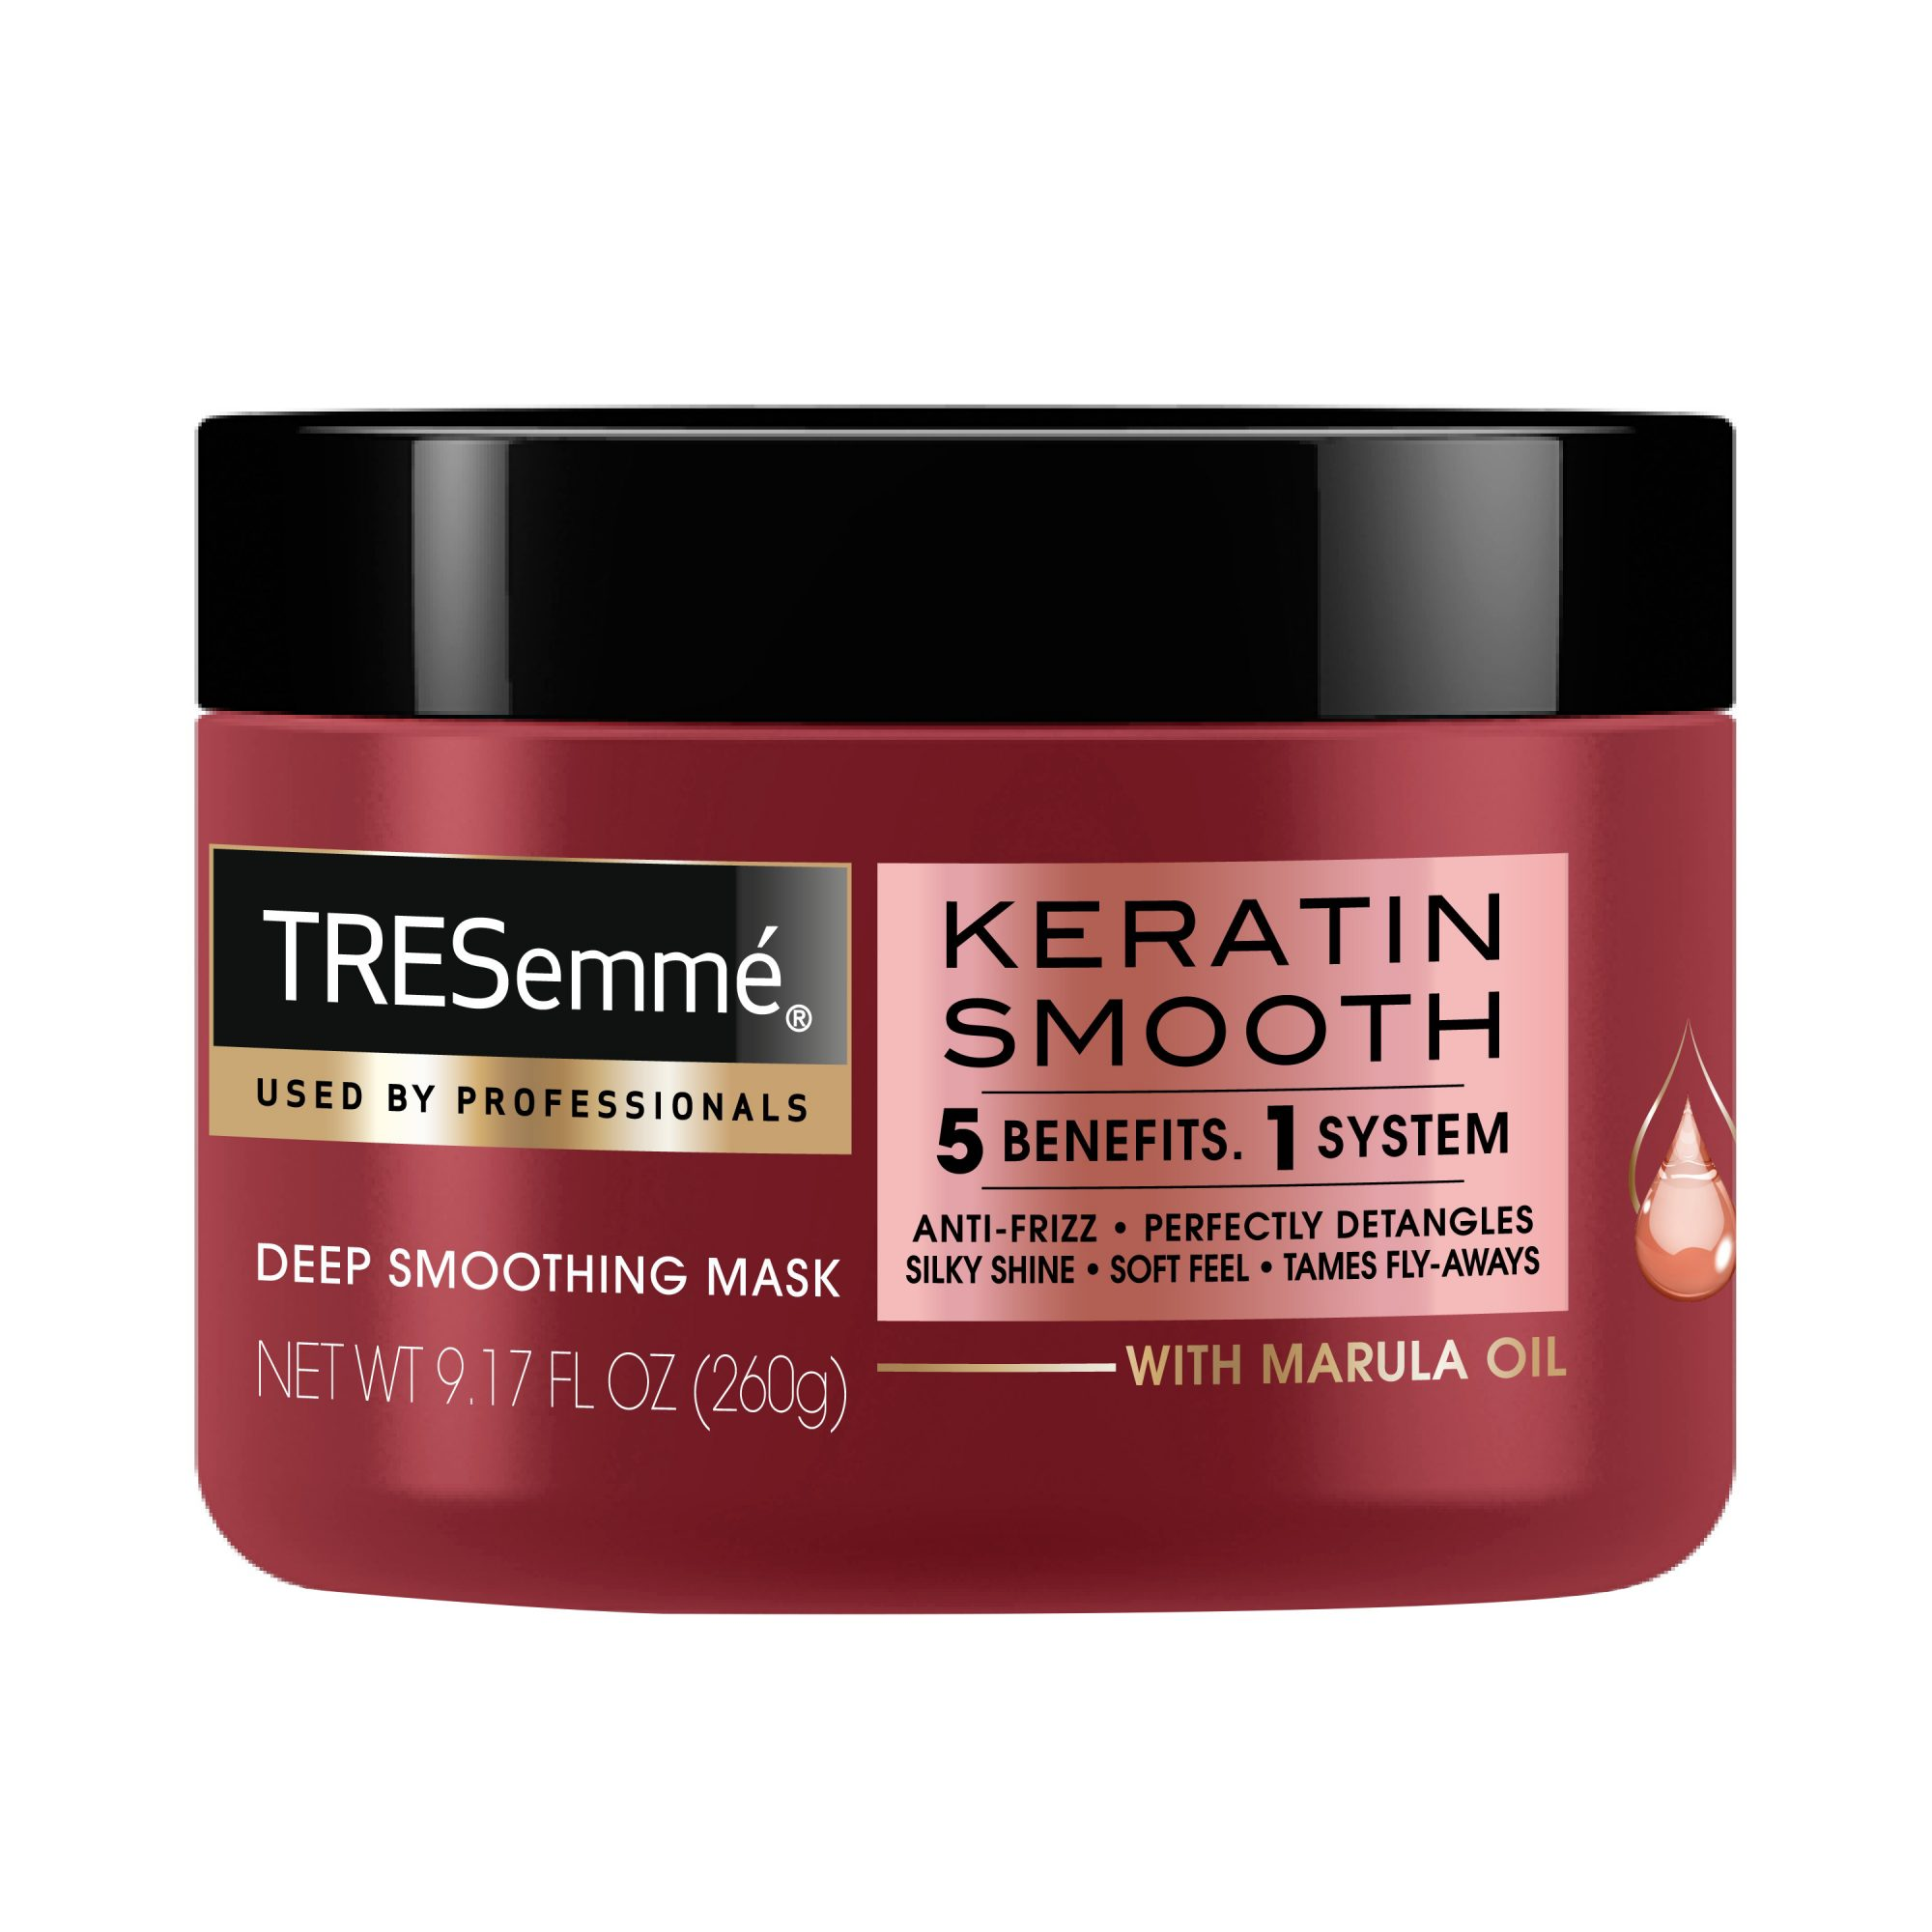 Tresemme Expert Selection Keratin Smooth Frizz & Humidity Defense Mask